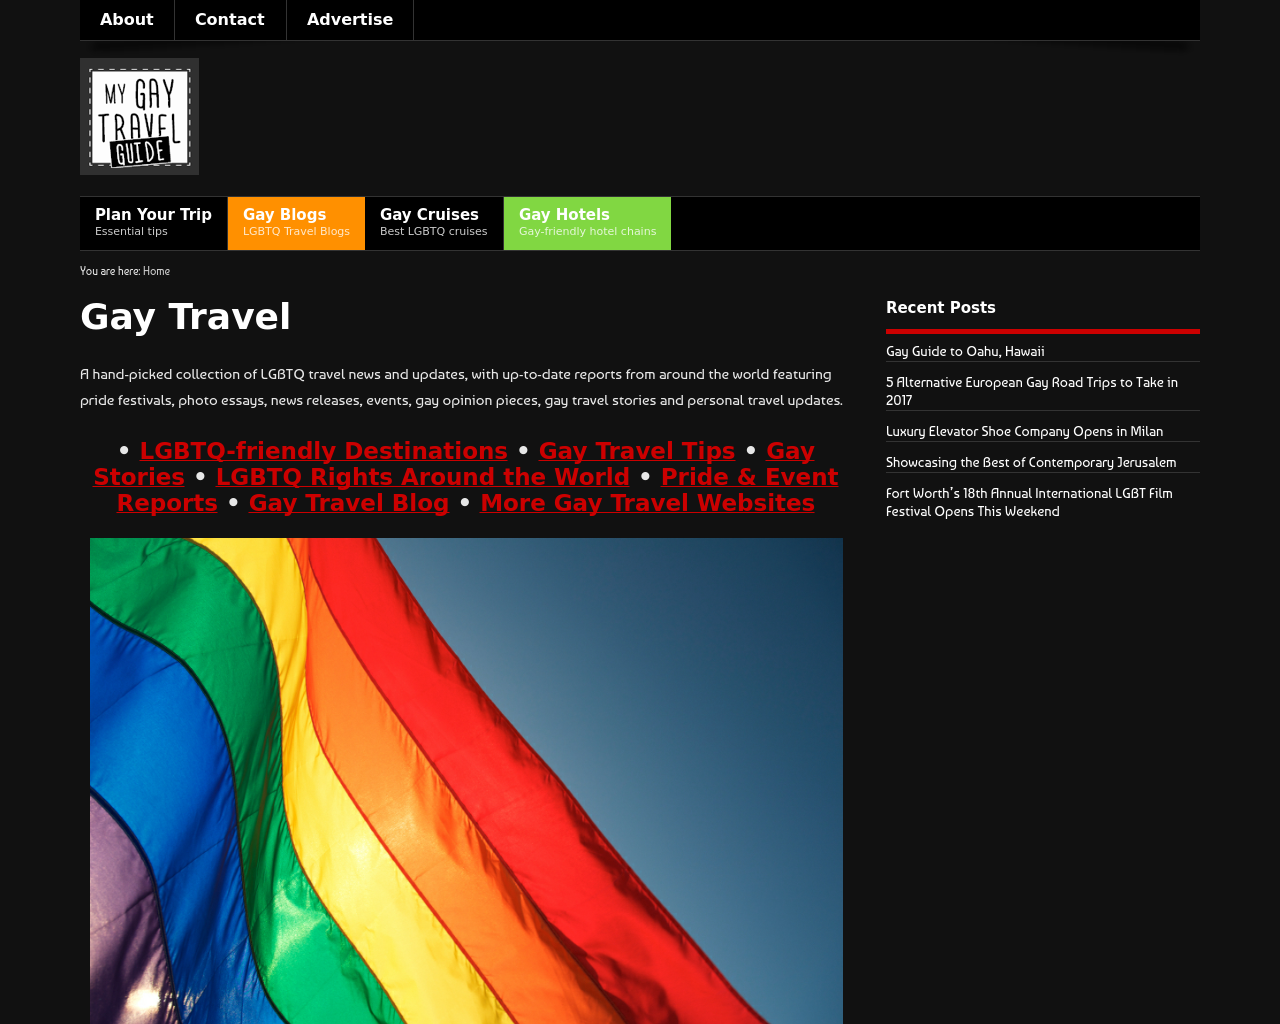 MY-GAY-TRAVEL-GUIDE-Advertising-Reviews-Pricing